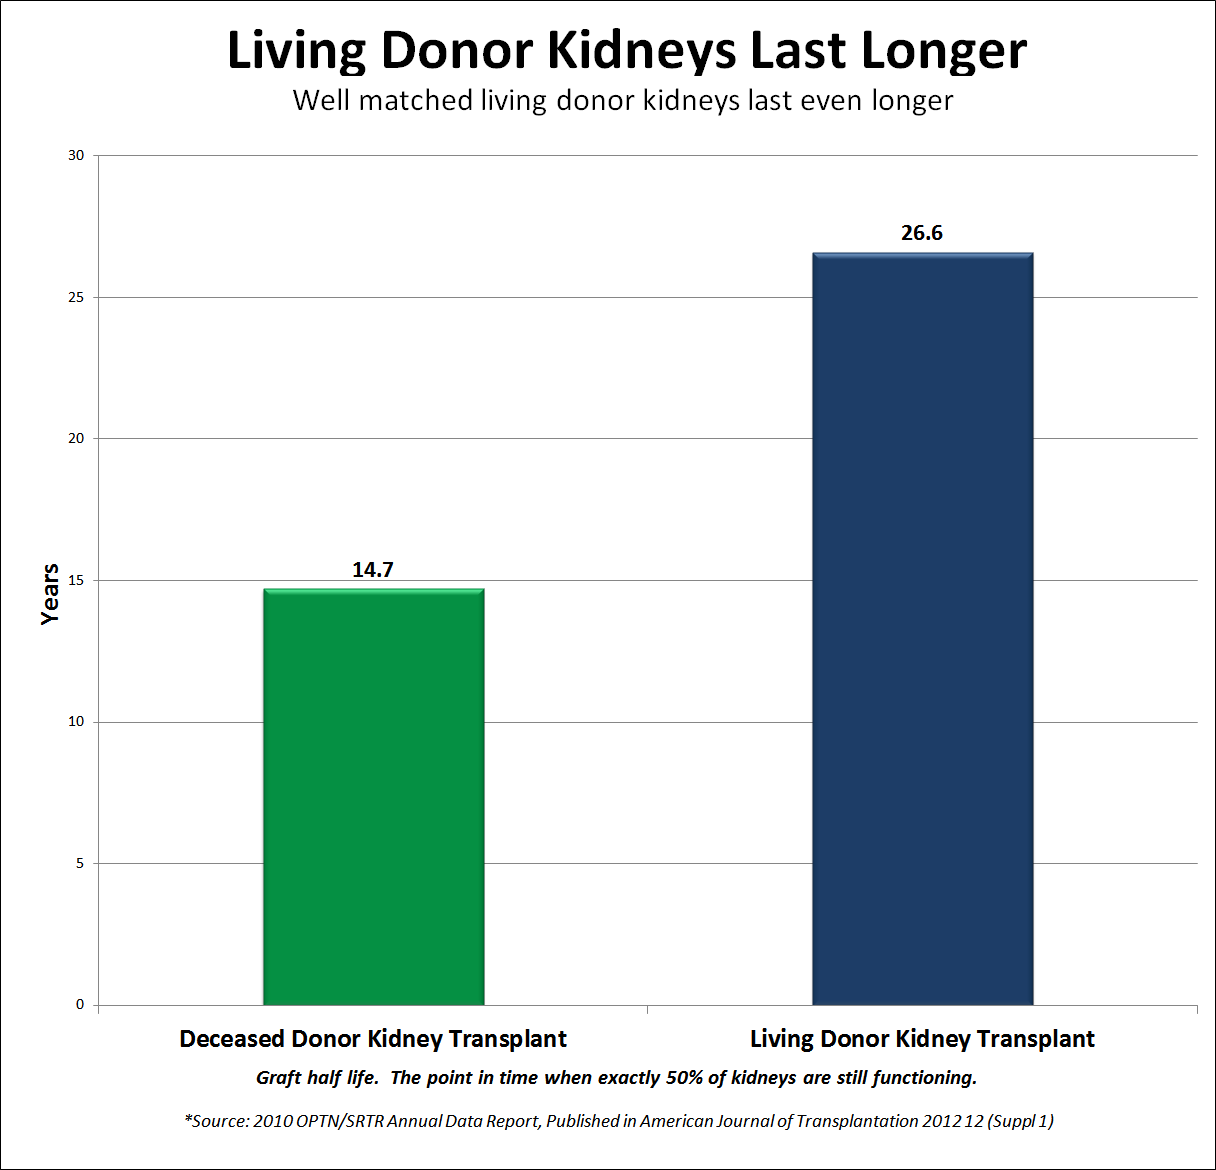 Living Donor Kidneys Last Longer